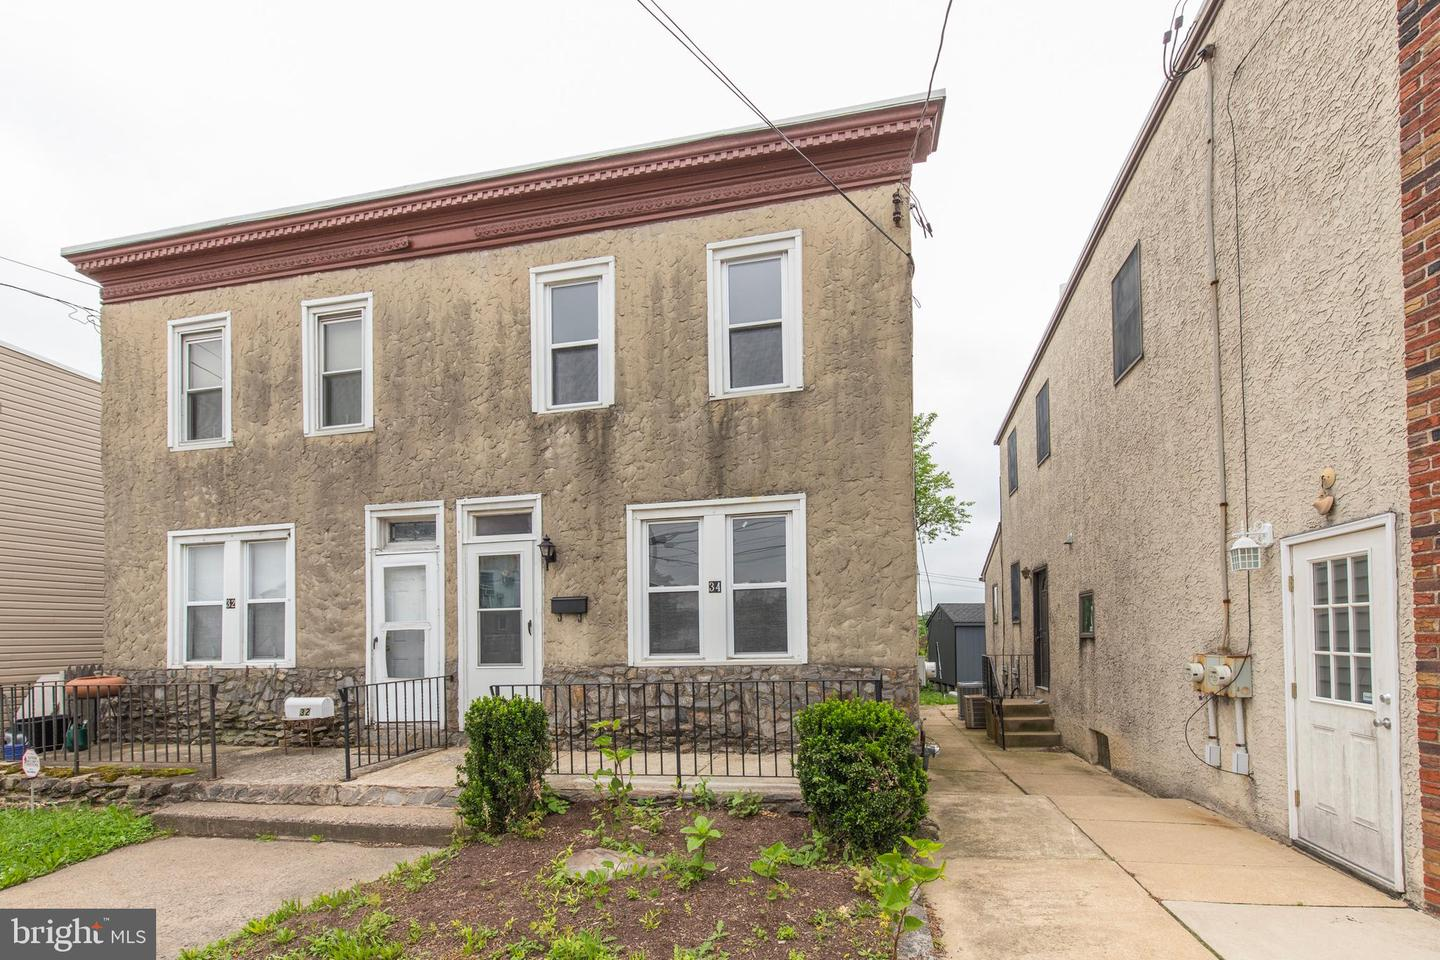 34 Darby Road Havertown, PA 19083